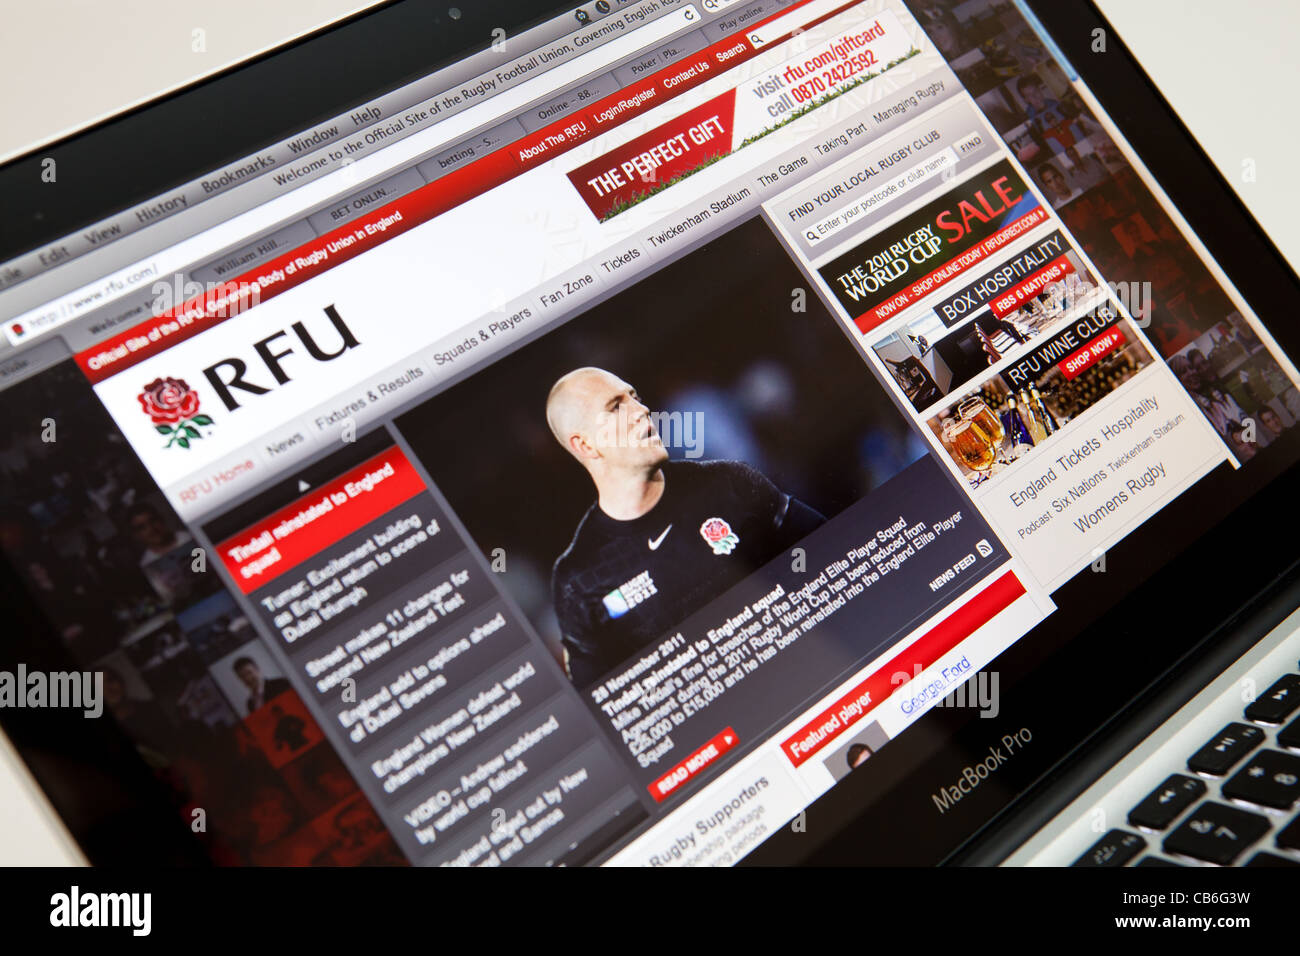 RFU Rugby Football Union Website Screen shot of web page - Stock Image